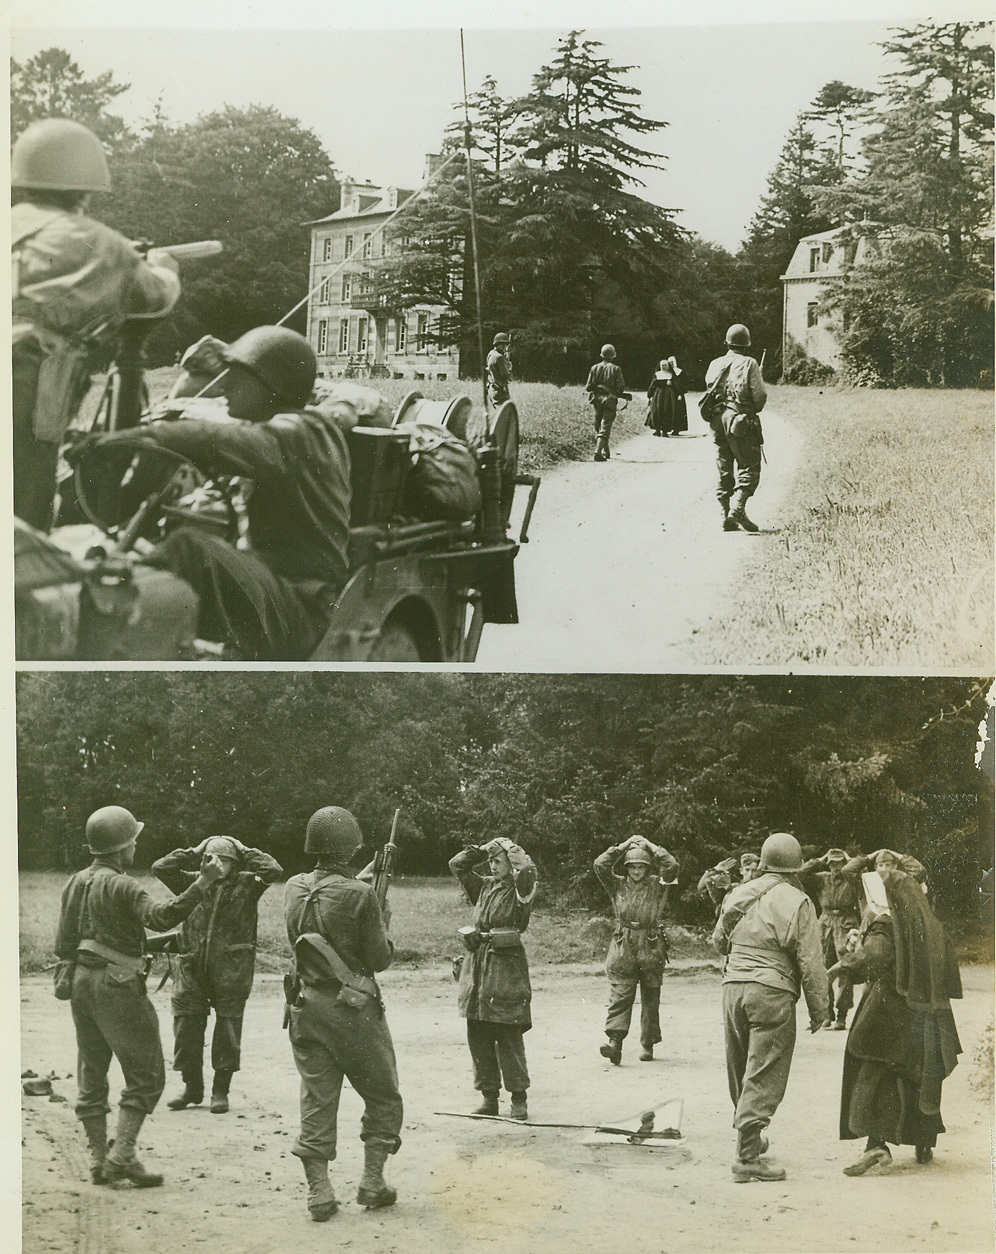 Surrender In Avranches, 8/10/1944. France—During the drive for Avranches an American patrol heads cautiously toward a convent where Nazi soldiers are believed to have fortified themselves. In the top photo two nuns come out to meet the patrol bearing the German offer of surrender. Capt. Albert J. Owen, nearest the nuns, accepted the surrender. In the bottom photo, German soldiers, hands on their heads, come out of their convent hiding place. Looking on is one of the nuns who negotiated the surrender. Credit: ACME;